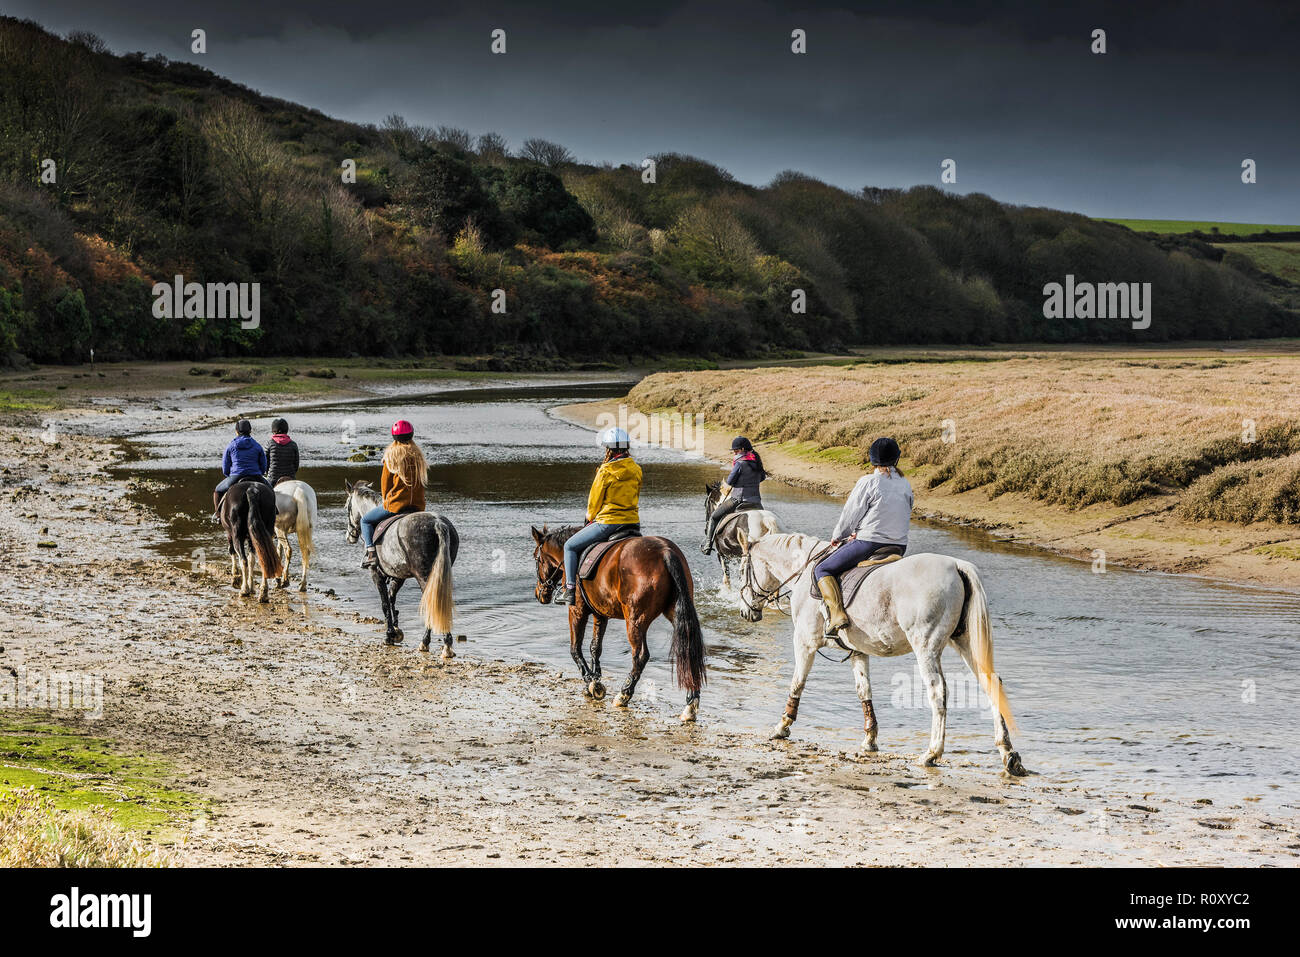 Pony trekking along the Gannel River at low tide in Newquay Cornwall. - Stock Image